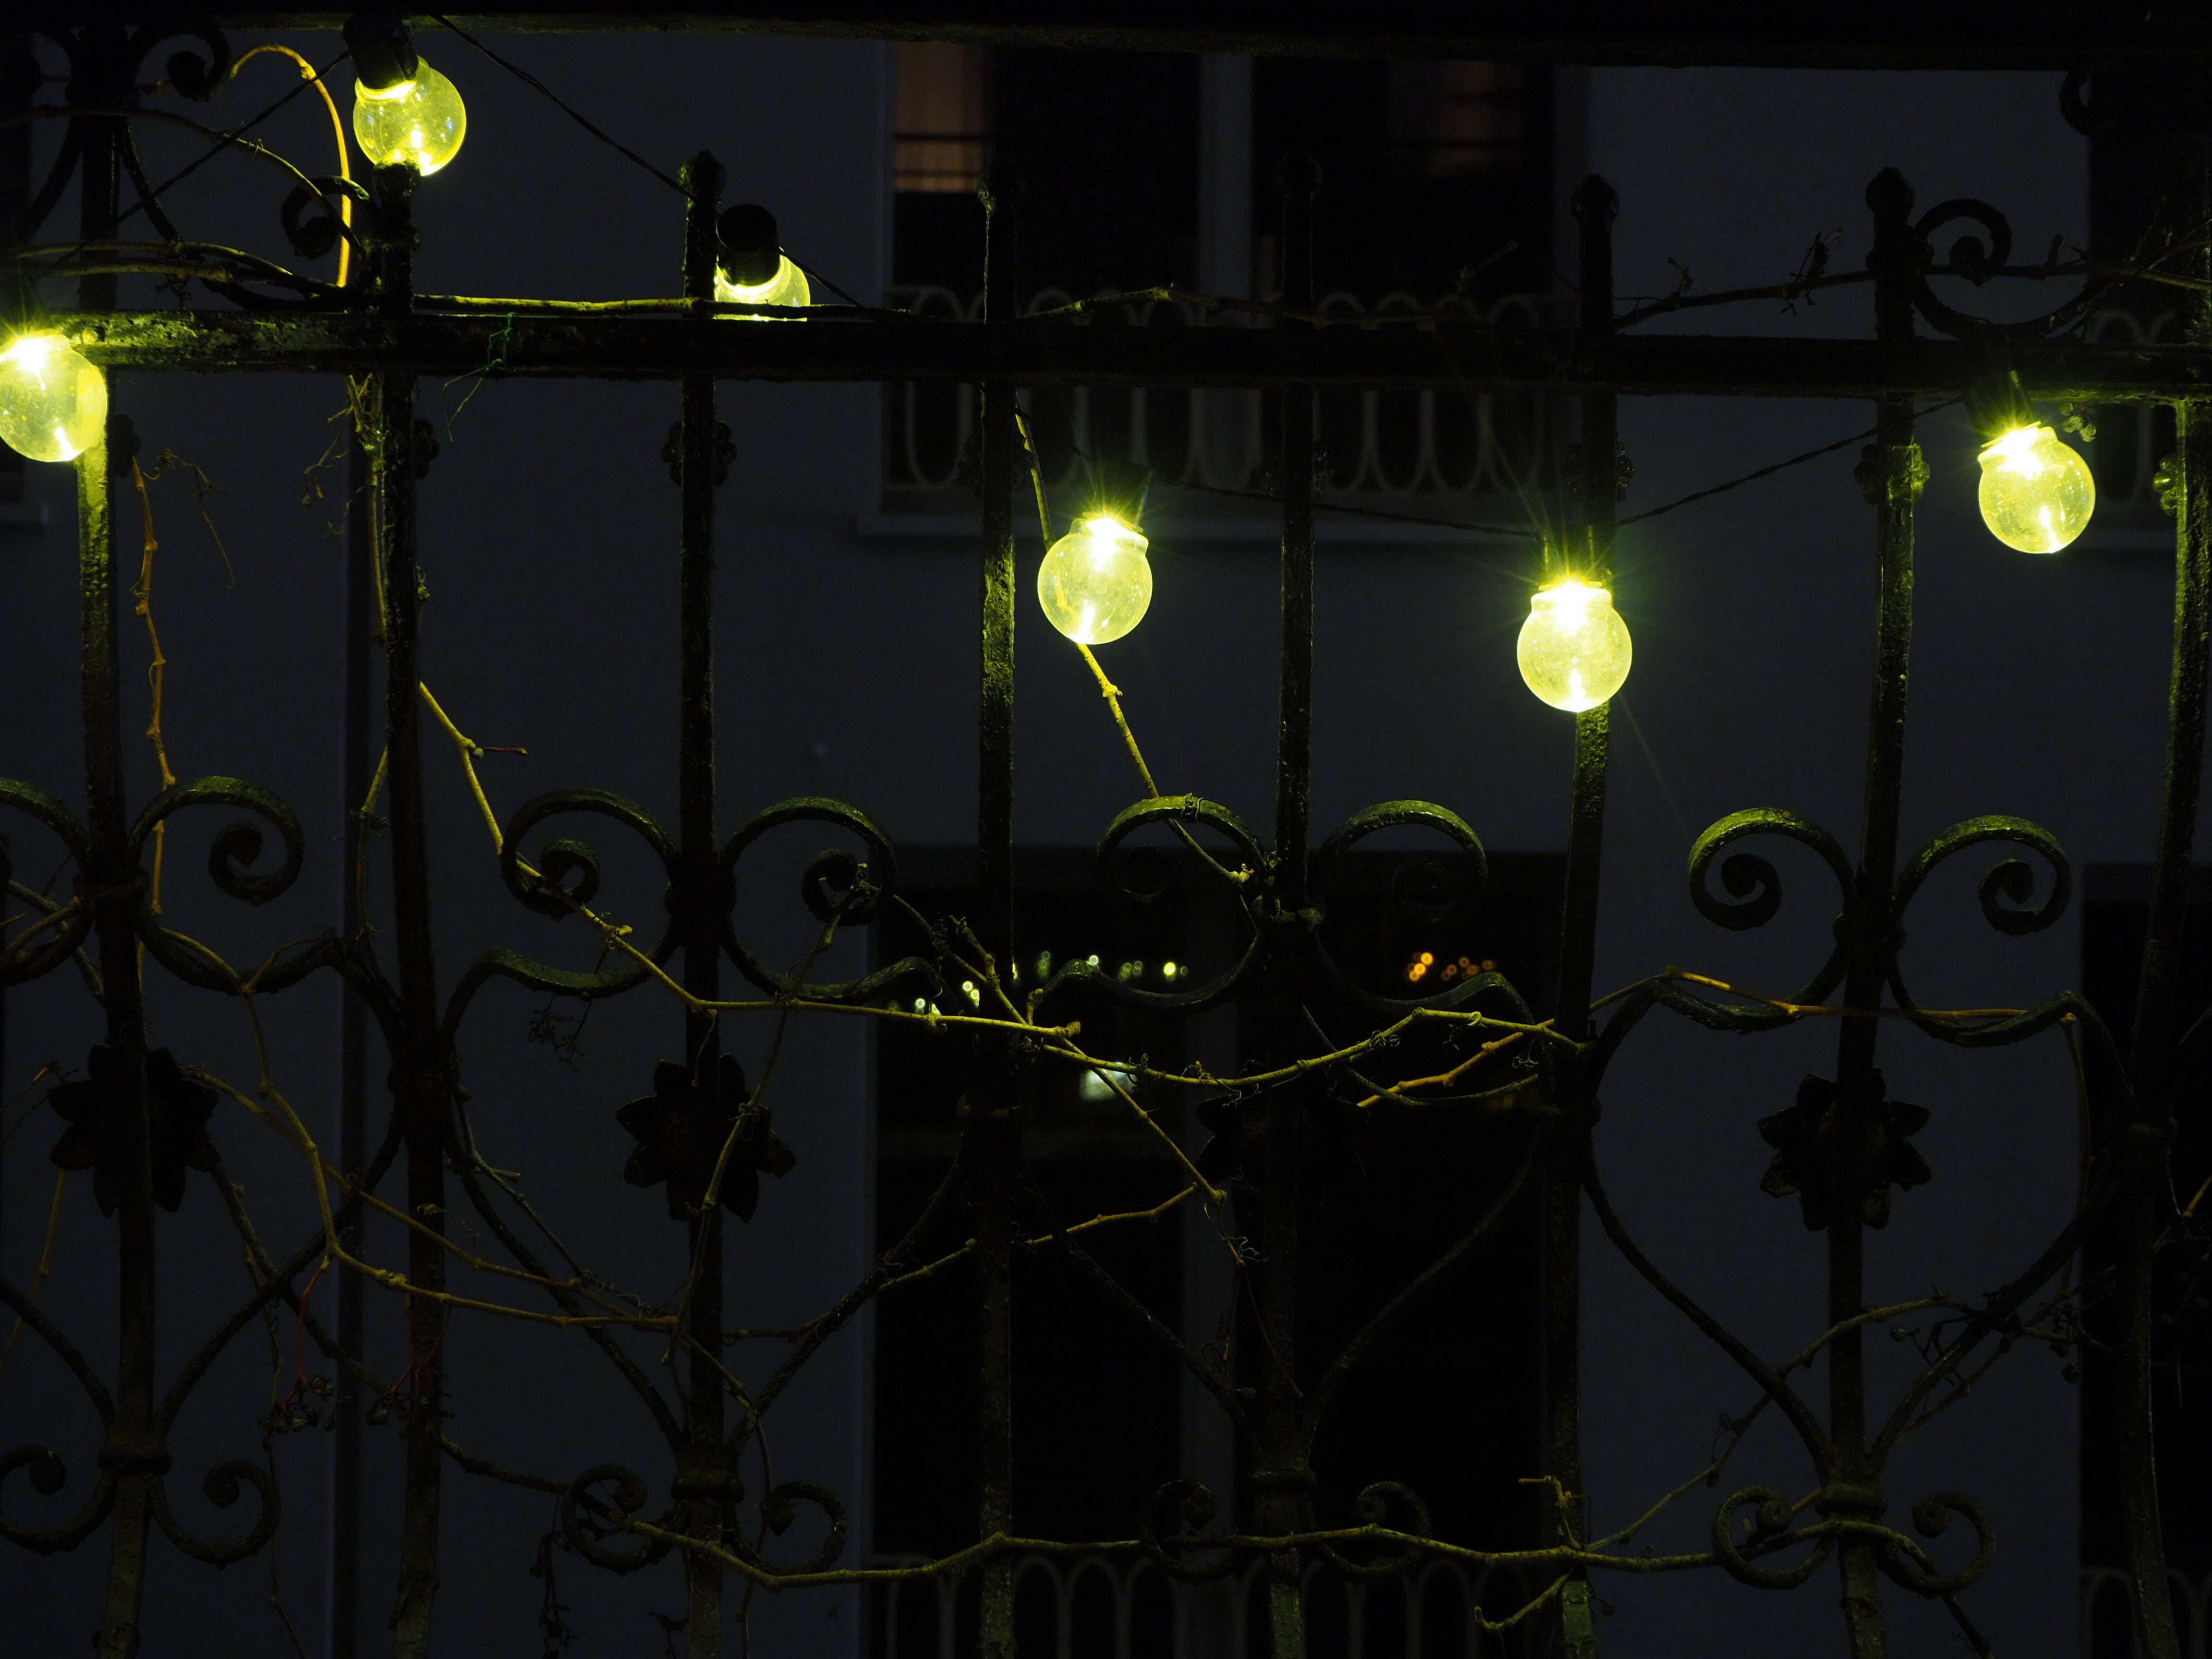 Free stock photo of balcony, string lights